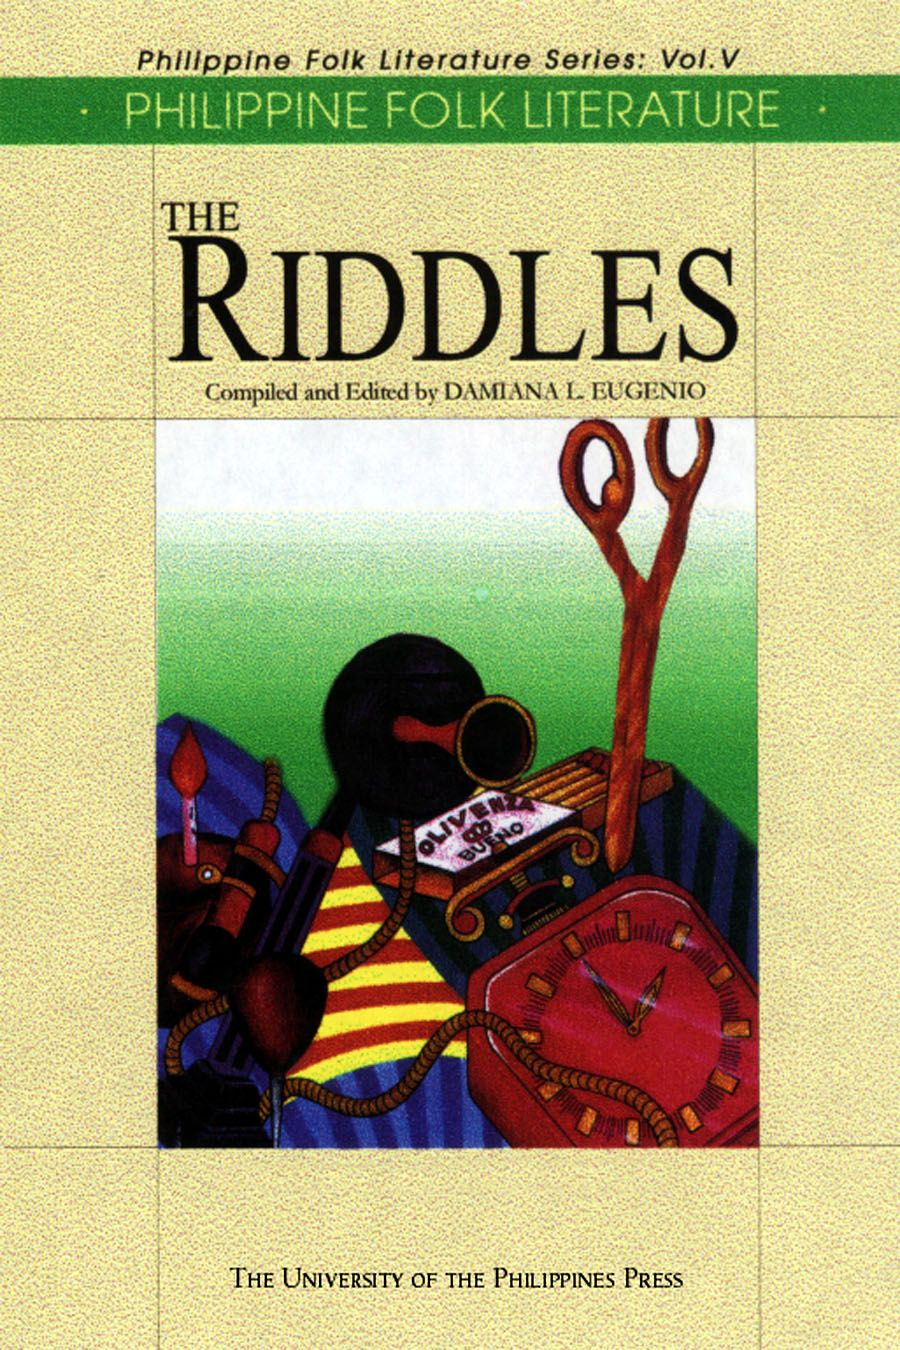 A book on Philippine Folk Literature. Riddles are defined